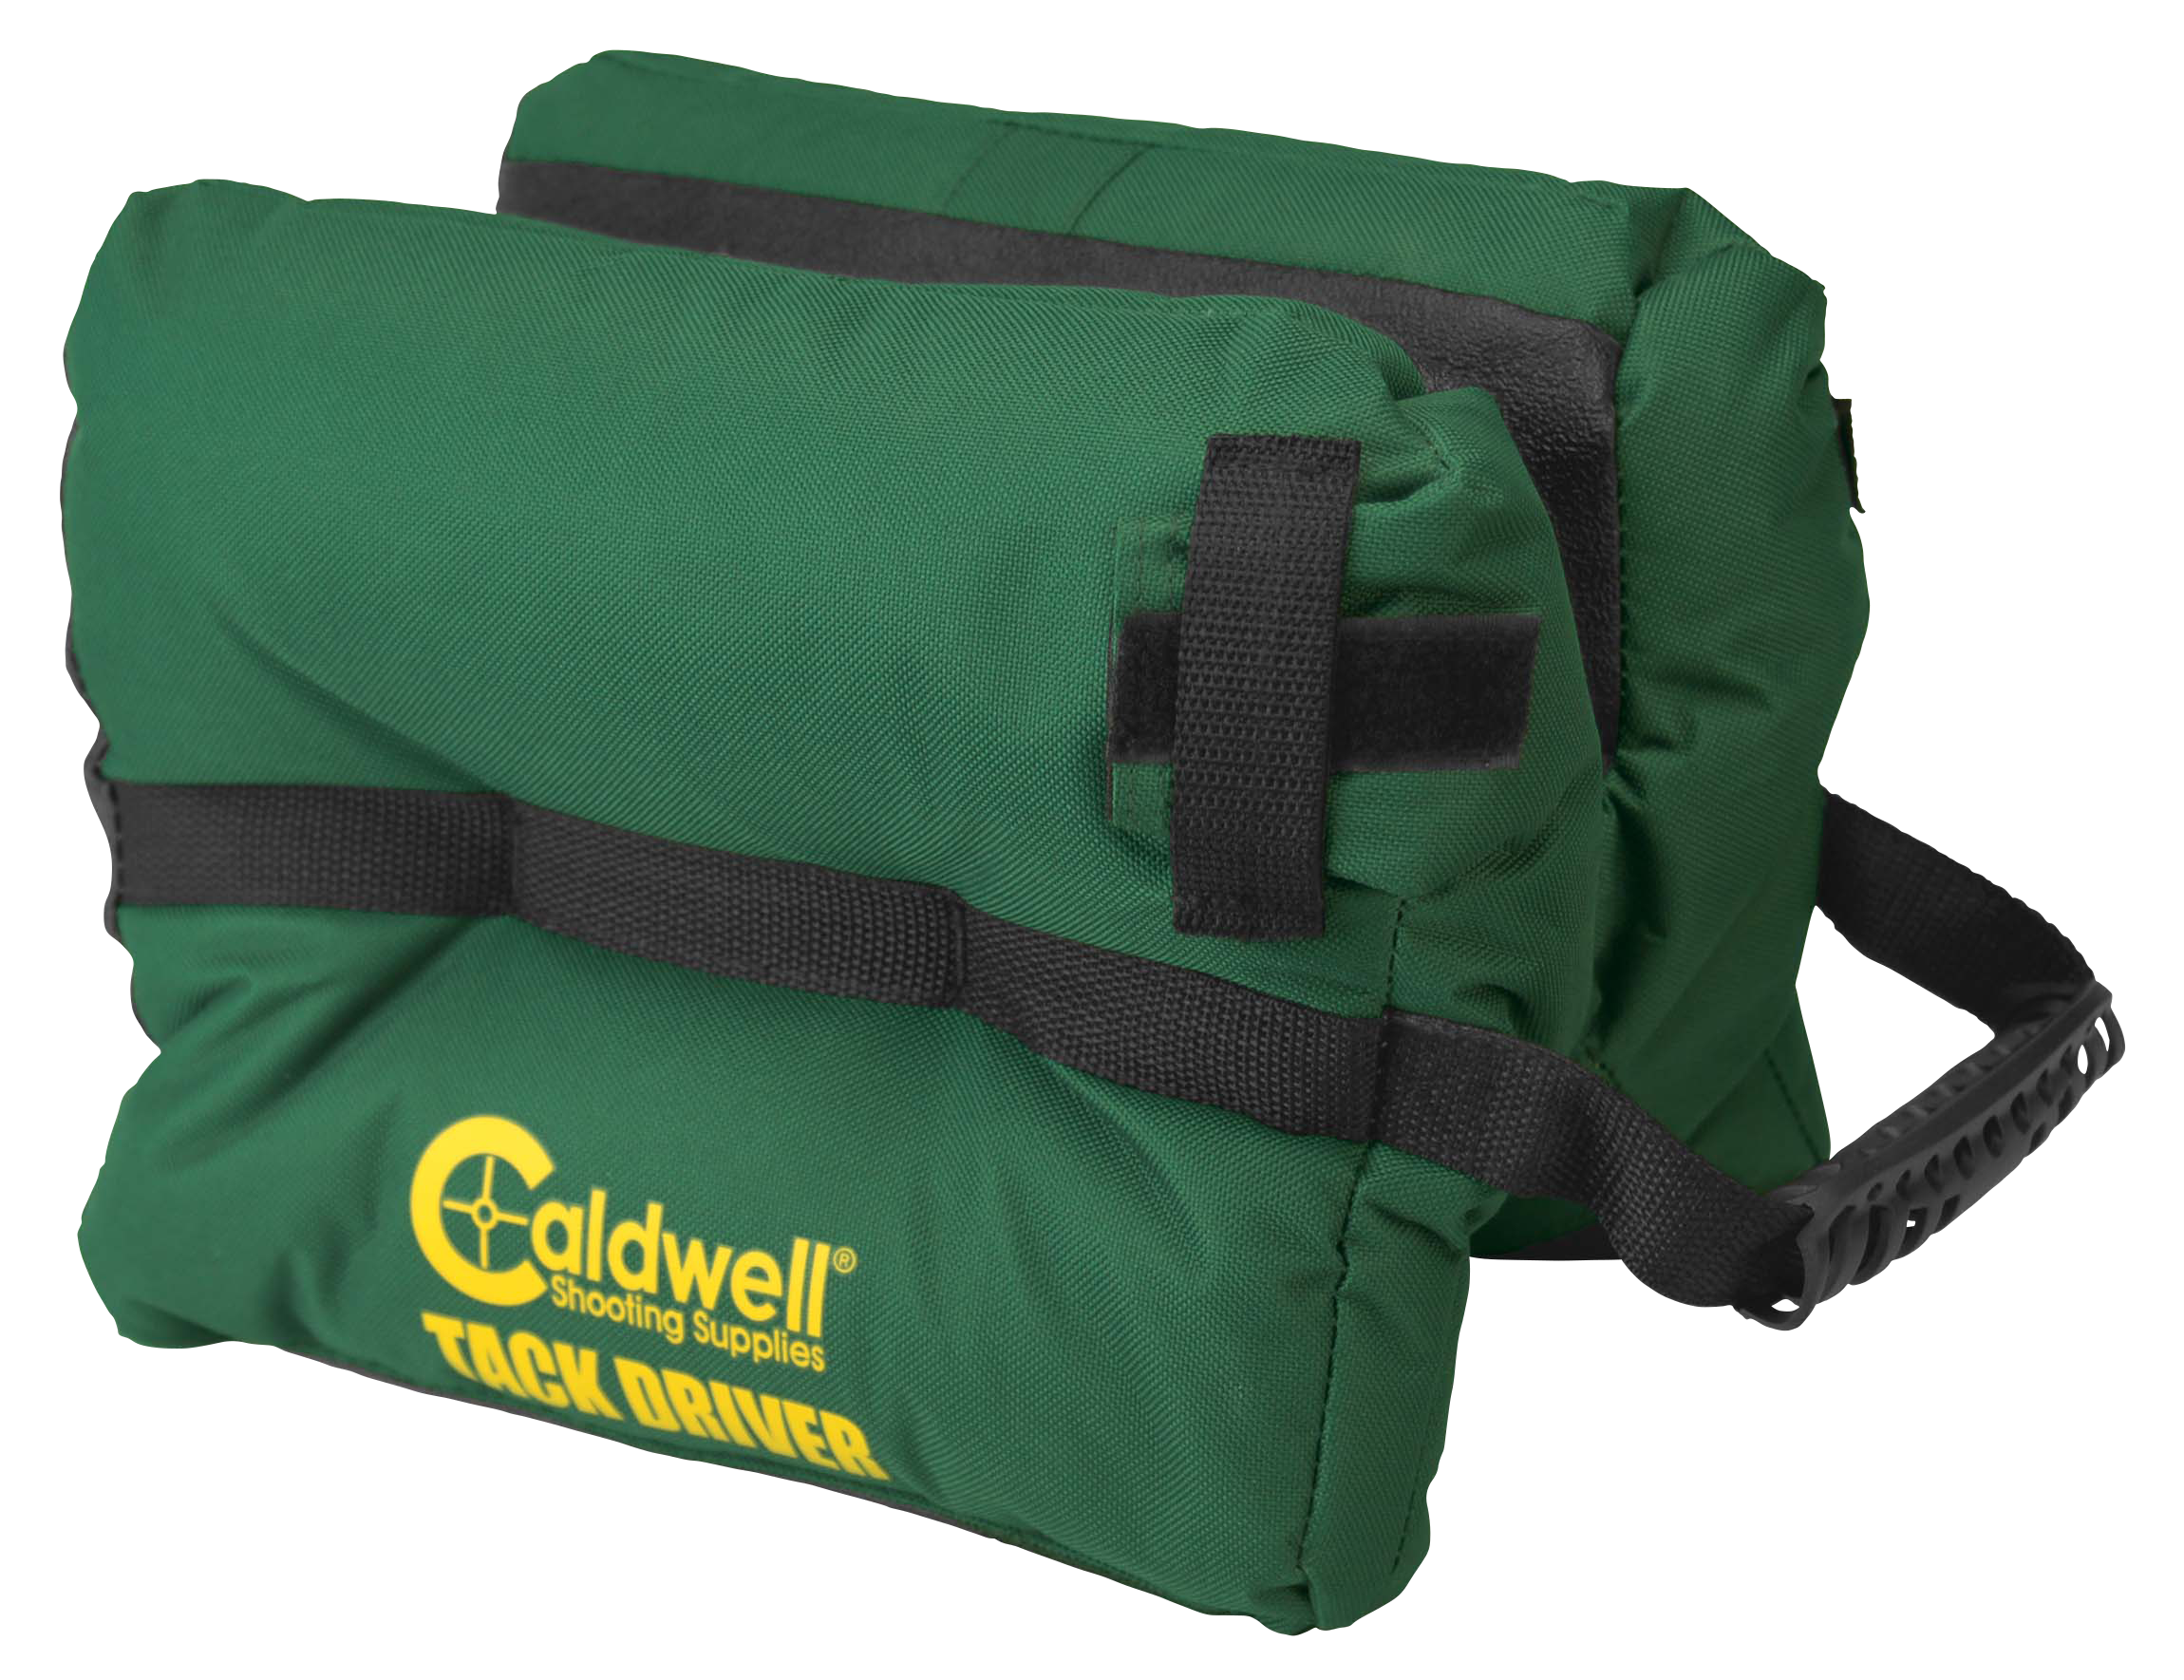 Caldwell Tack Driver Shooting Bag Front Bag - Filled